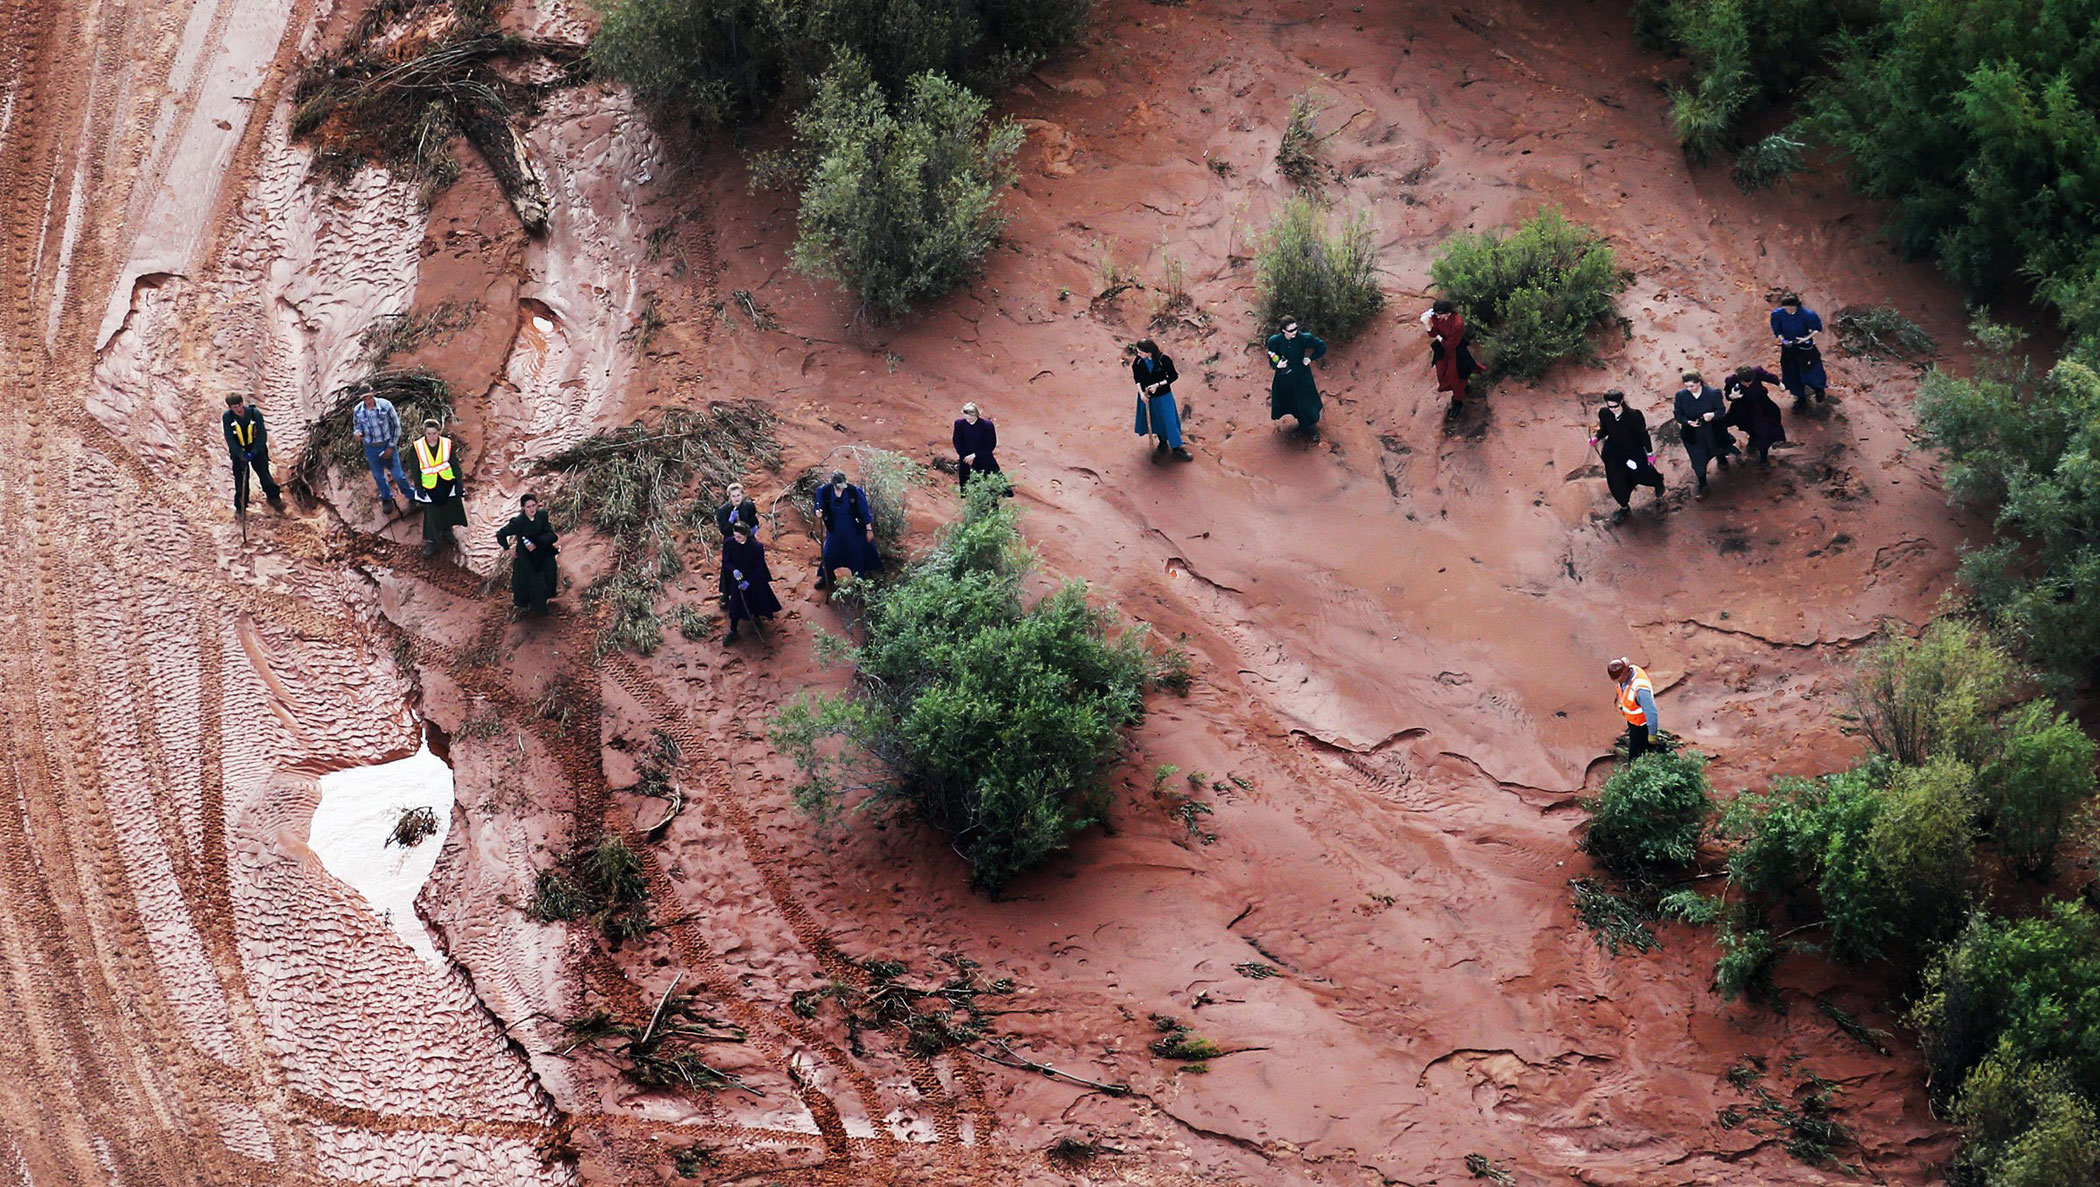 In this aerial photo searchers continue looking for 6-year-old Tyson Lucas Black on Sept. 16, 2015 in Zion National Park, Utah